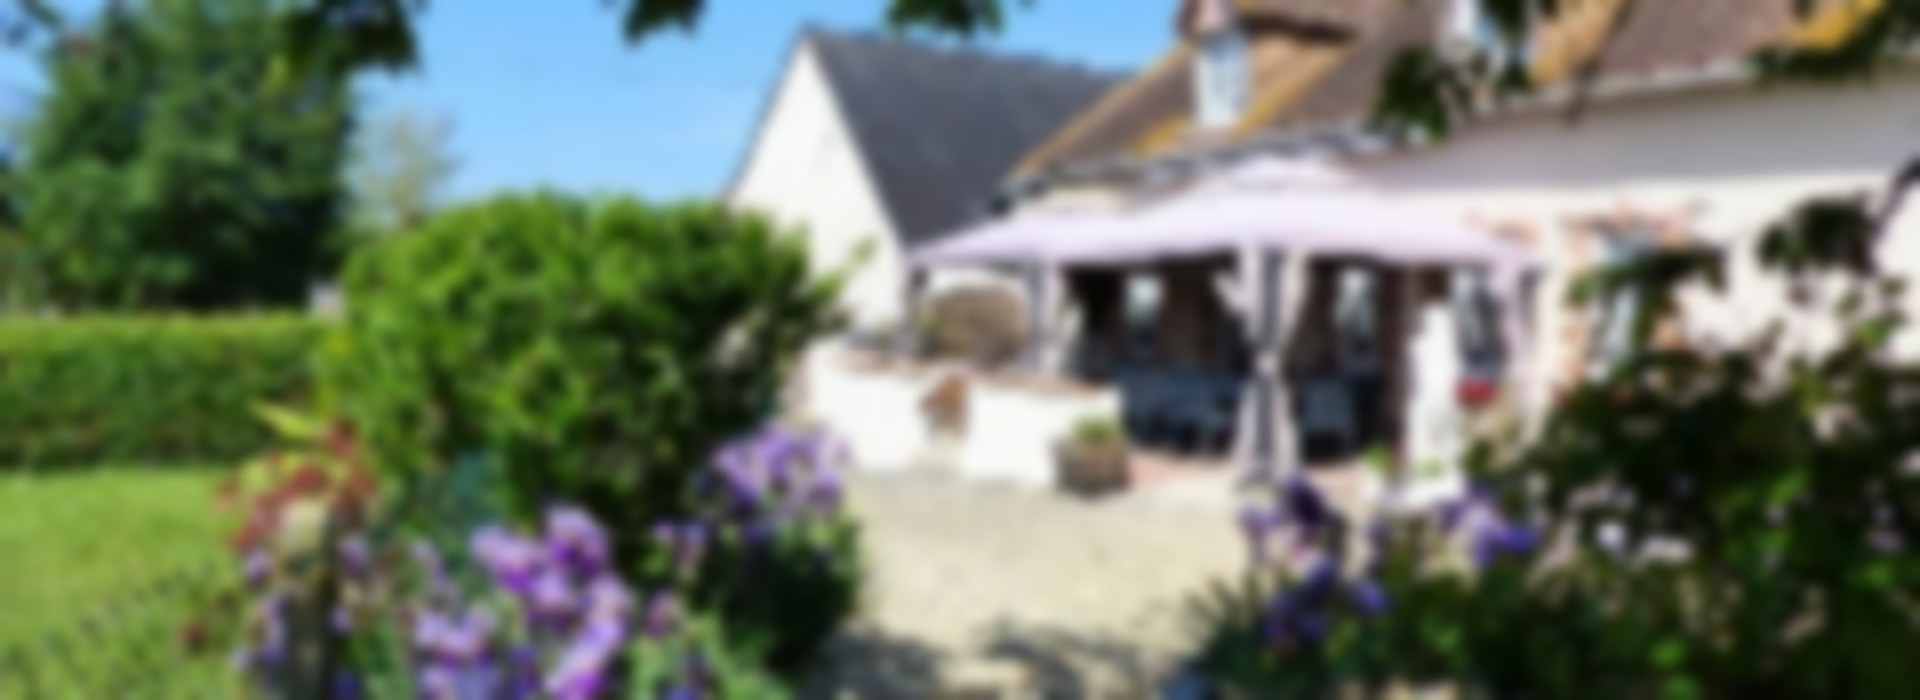 Chambre d 39 hotes les bourrelieres bed and breakfast for Chambre d hote xanton chassenon